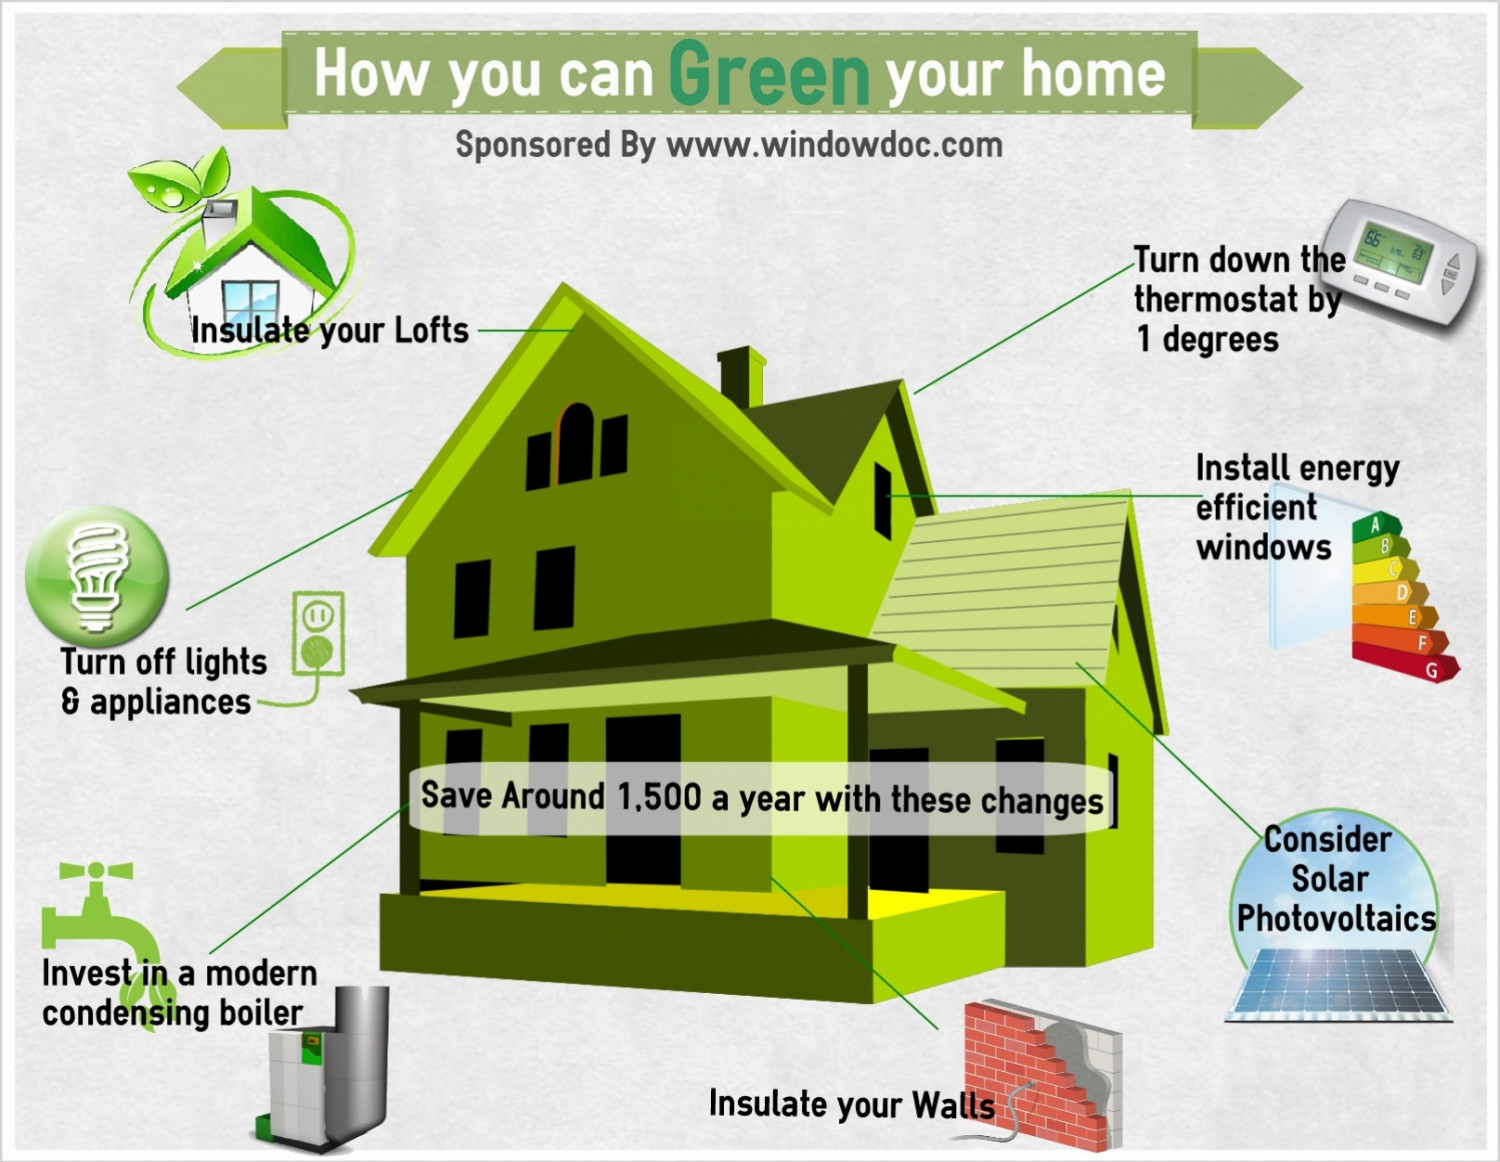 How To Green Your Home how you can green your home | visual.ly